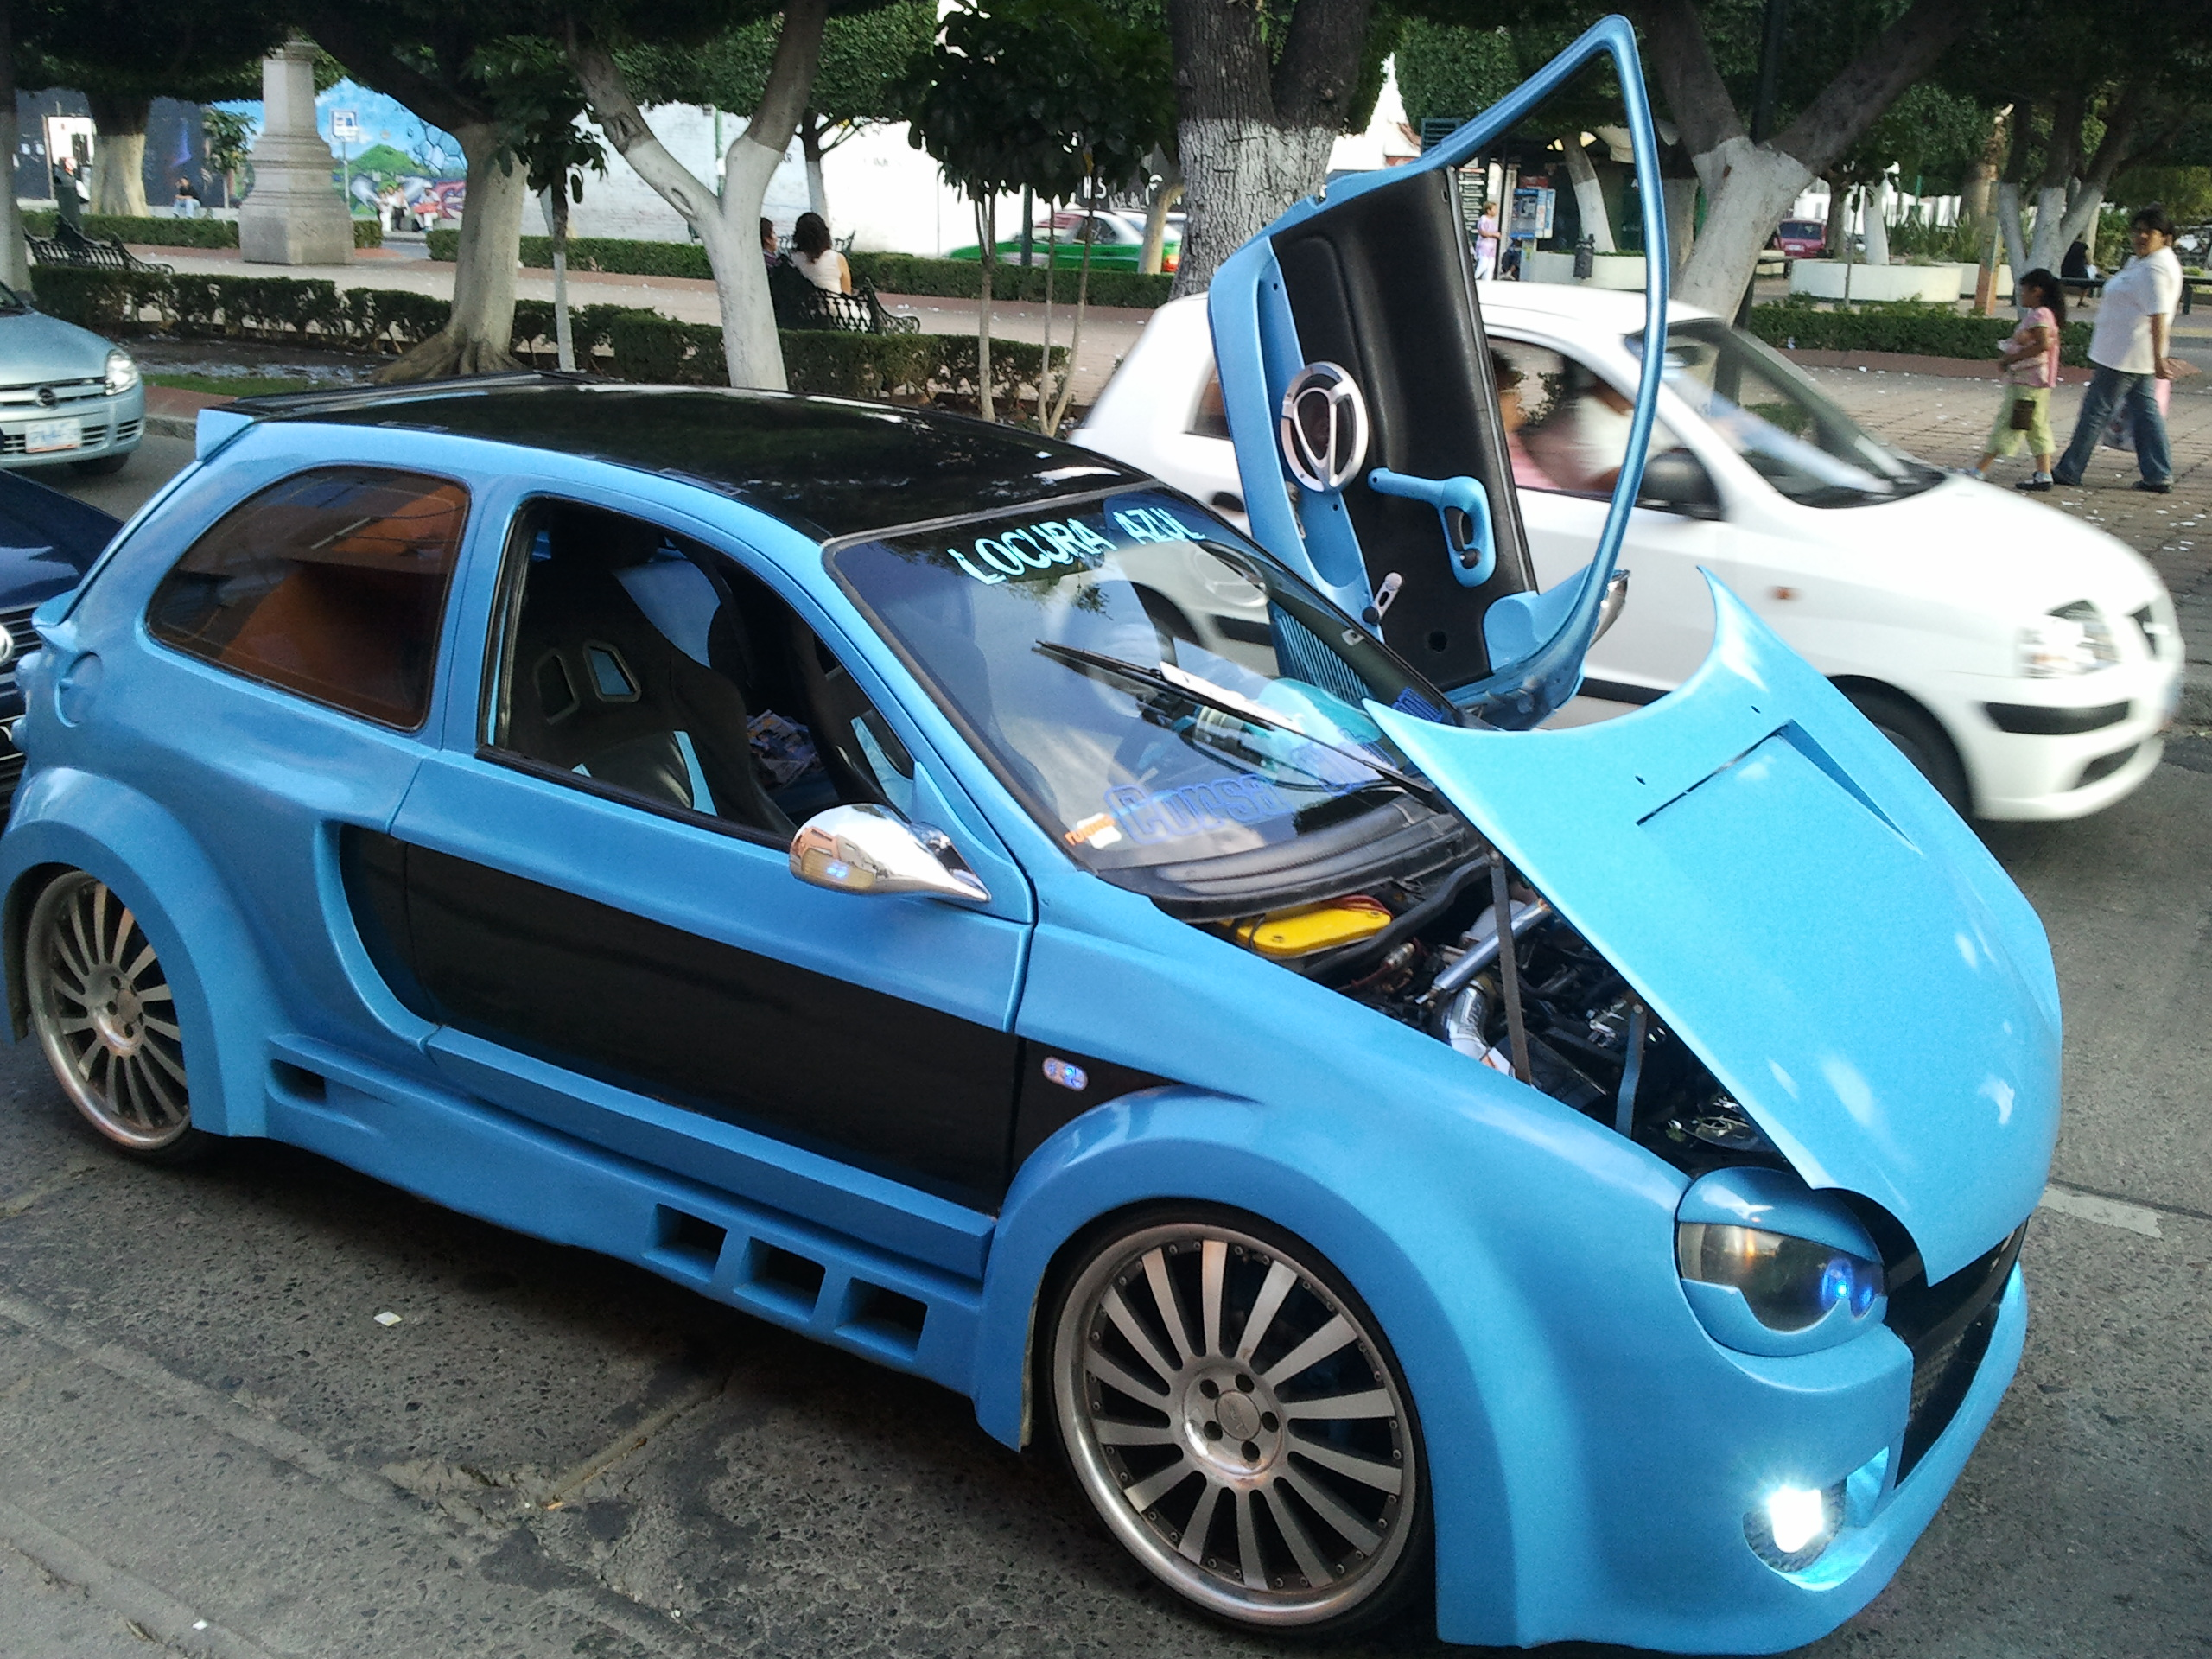 File:A modified Car displayed in the streets of Leon, Mexico.jpg ...